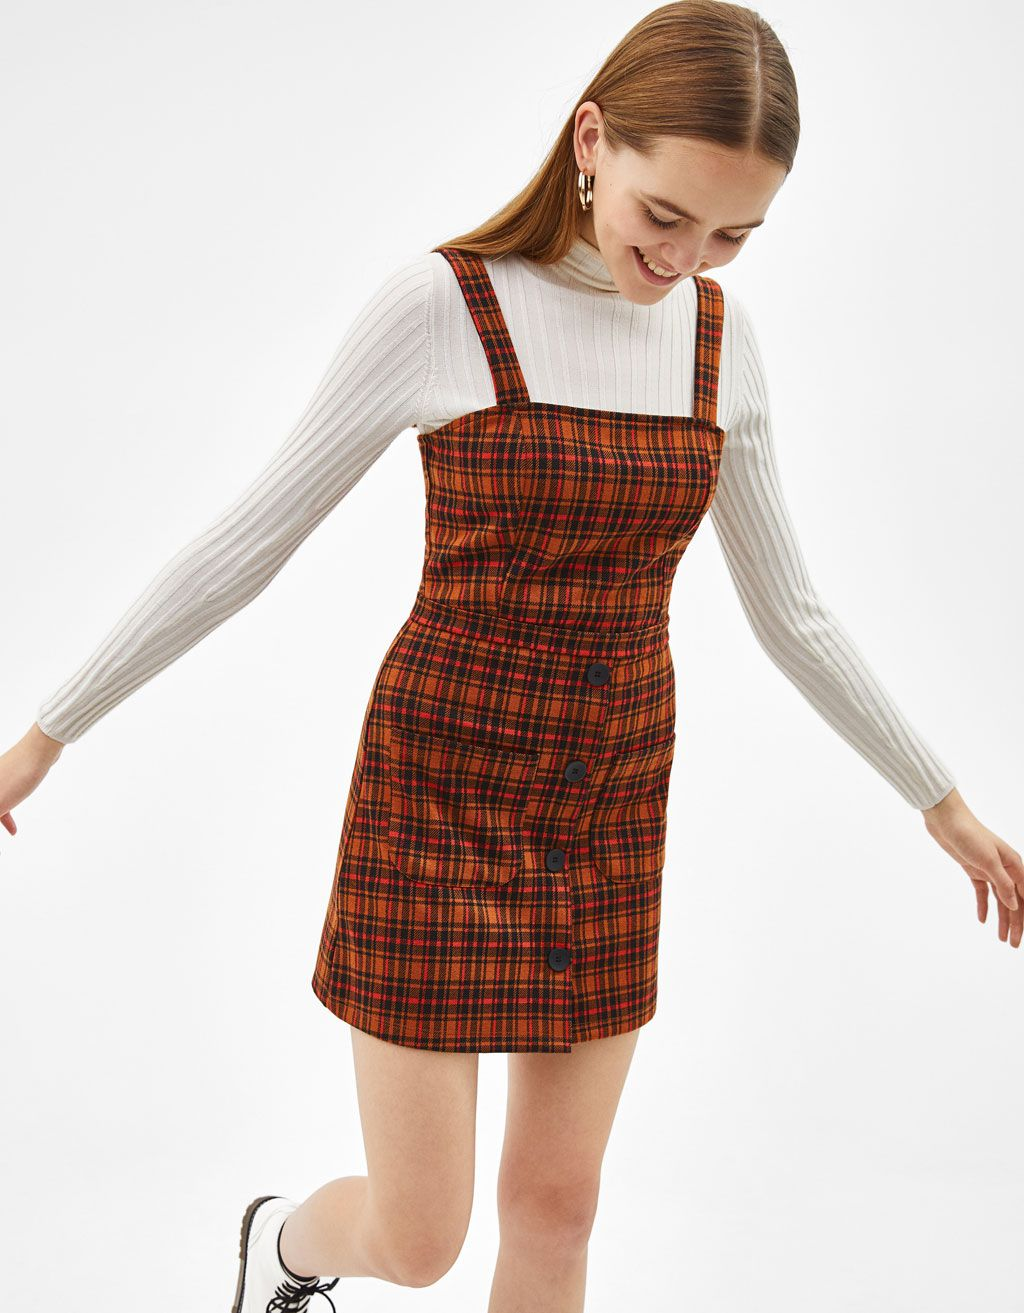 d02f0a35d3 Checked dungarees £15.99. Checked dungarees £15.99 Dungaree Skirt ...